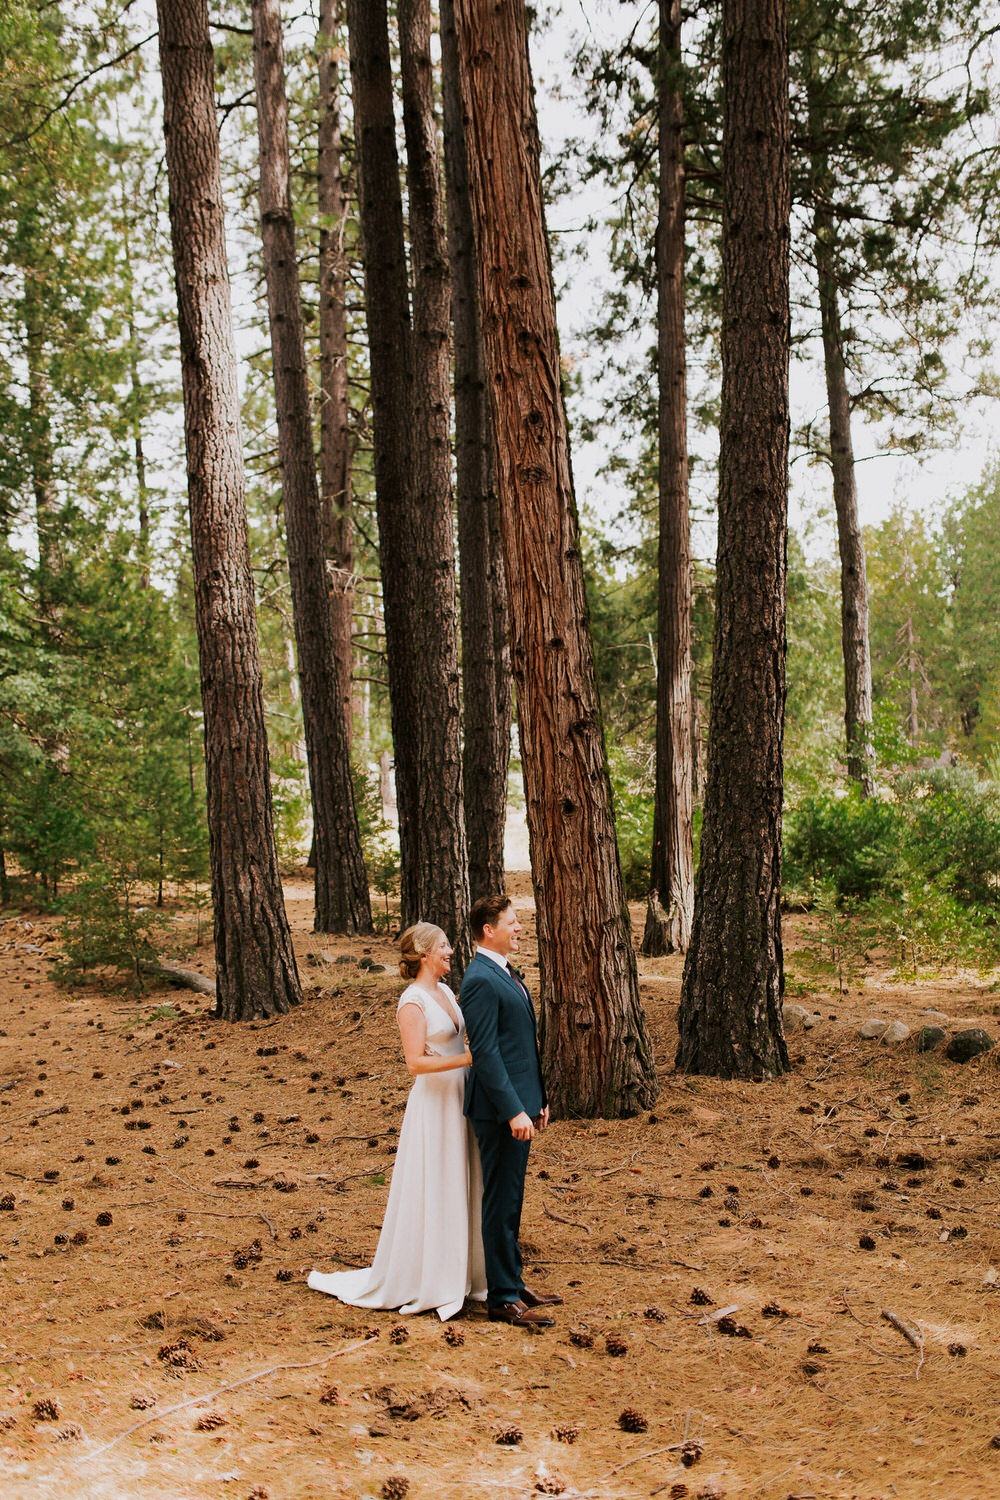 bride and groom first look in Yosemite National Park forest